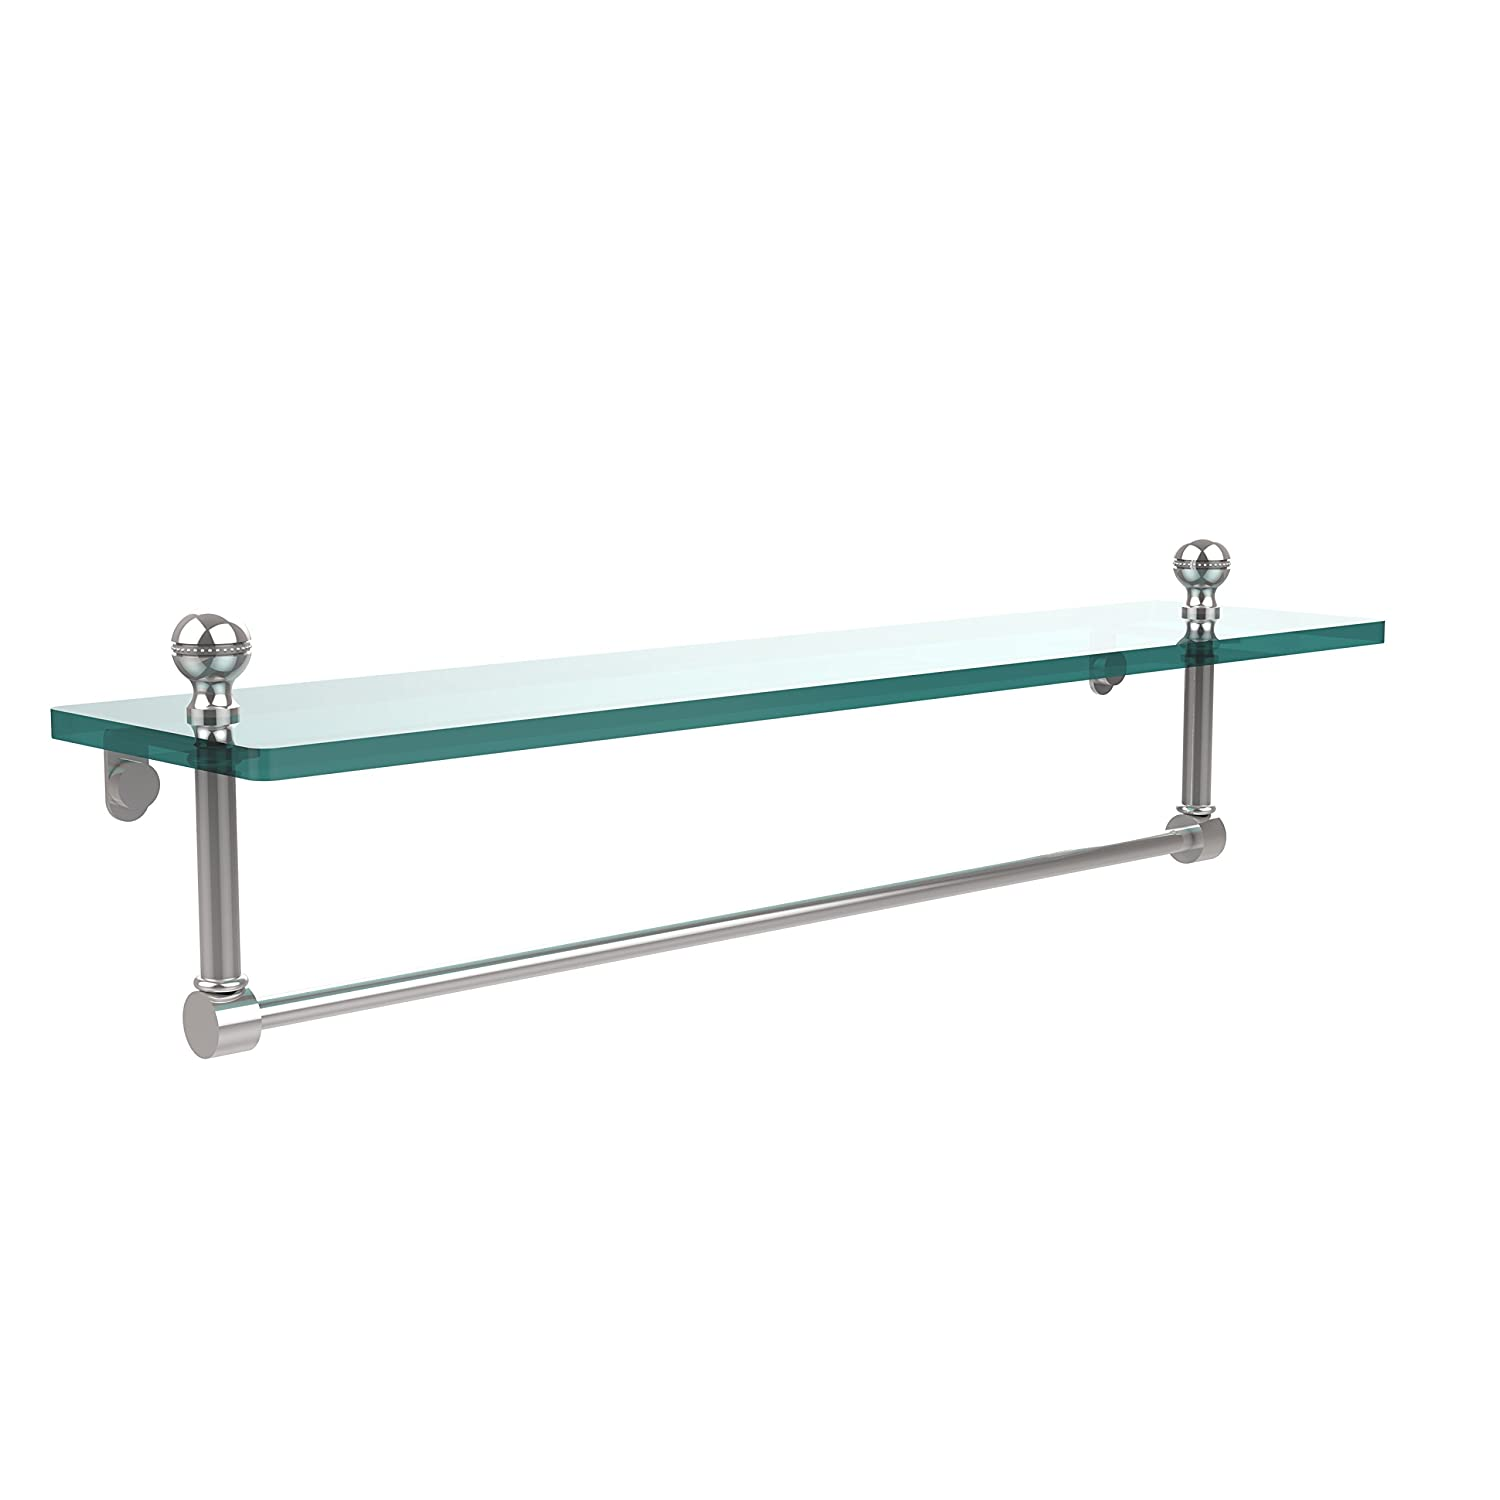 Allied Brass MA-1/22TB-PC 22-Inch Single Shelf with Towel Bar, Polished Chrome by Allied Precision Industries B00YE5URVY 光沢クロム 光沢クロム